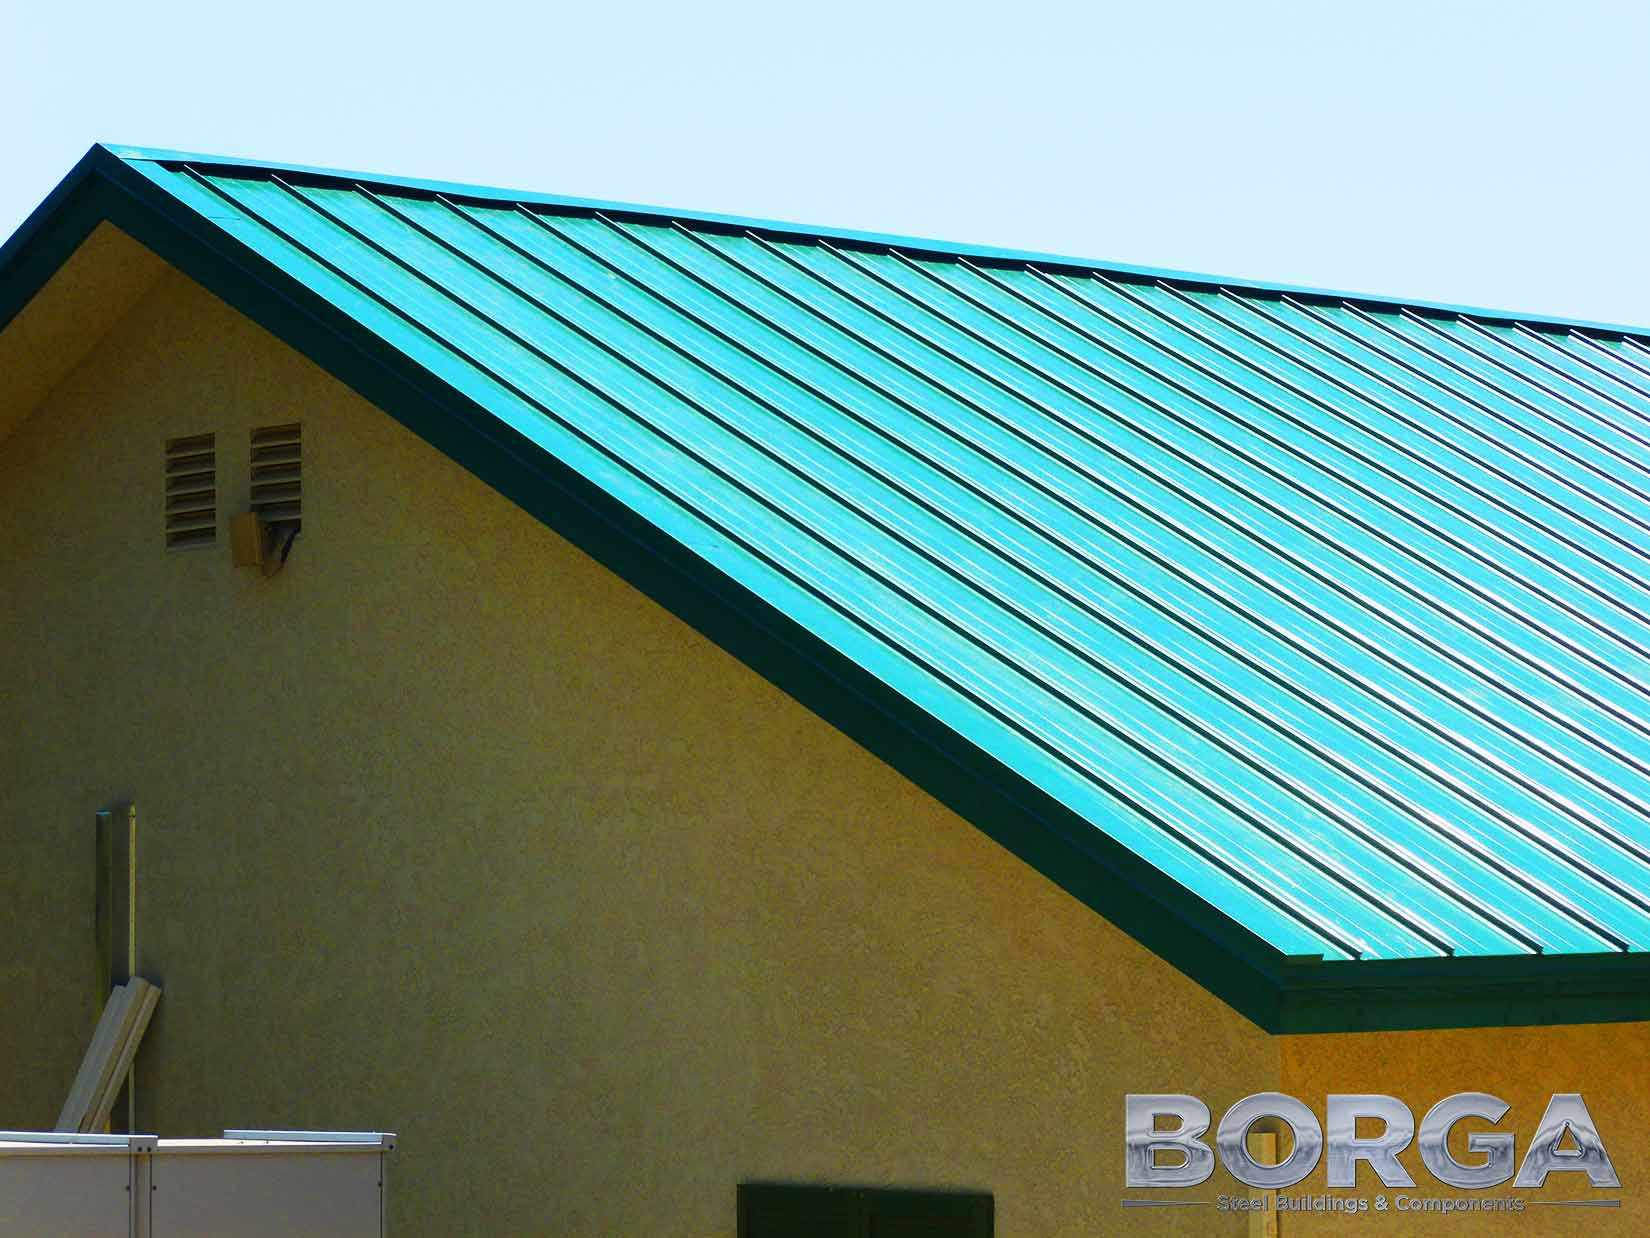 borga steel buildings components metal roof tioga panel green